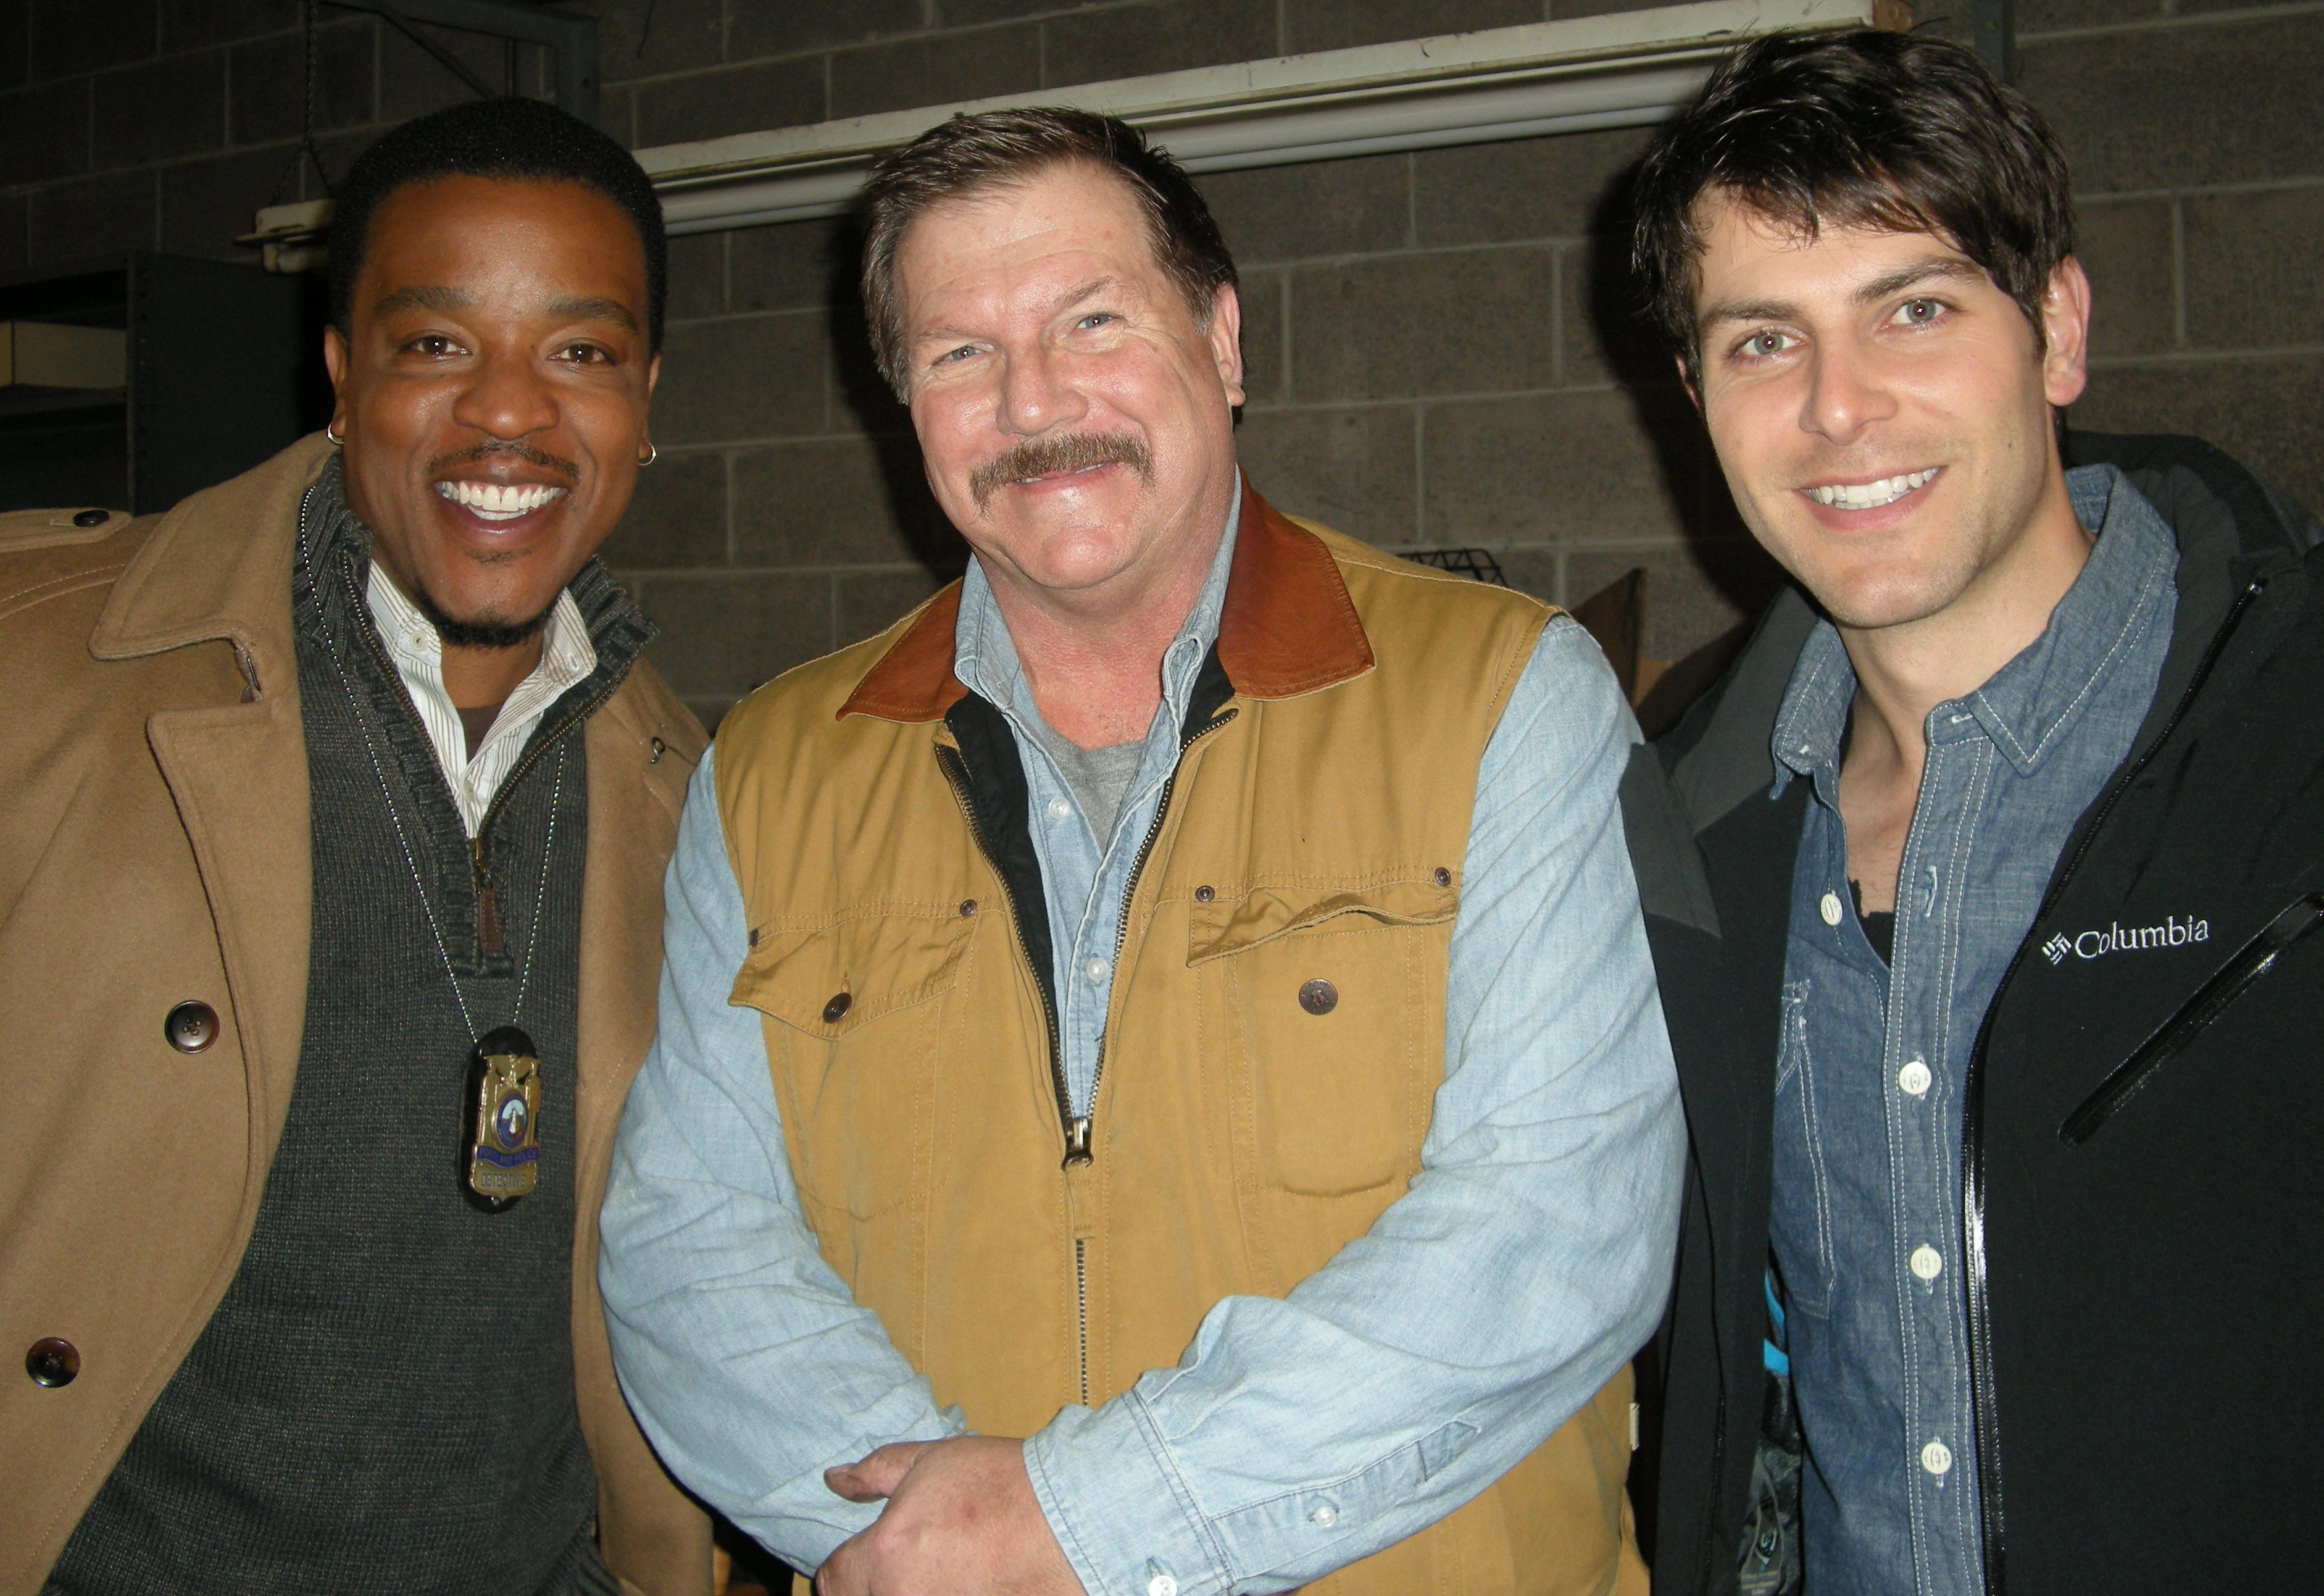 Daniel Knight (center) on the set of NBC's GRIMM with Russell Hornsby (left) and David Giuntoli (right)